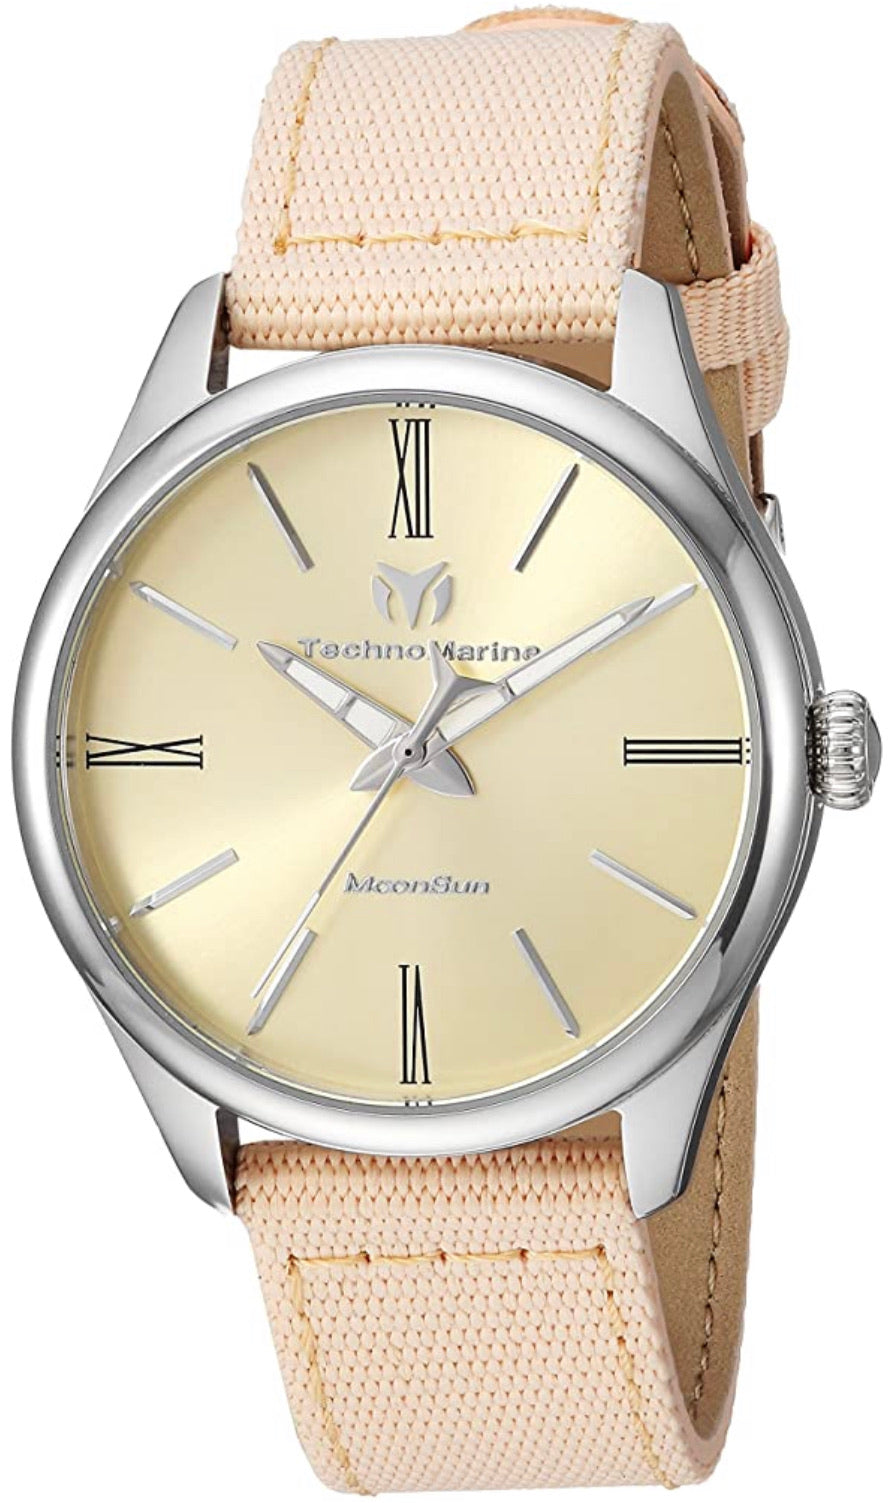 TECHNOMARINE MOONSUN WOMENS 36MM STAINLESS STEEL CASE METAL DIAL -MODEL TM-117013 - Boutique Watches & More